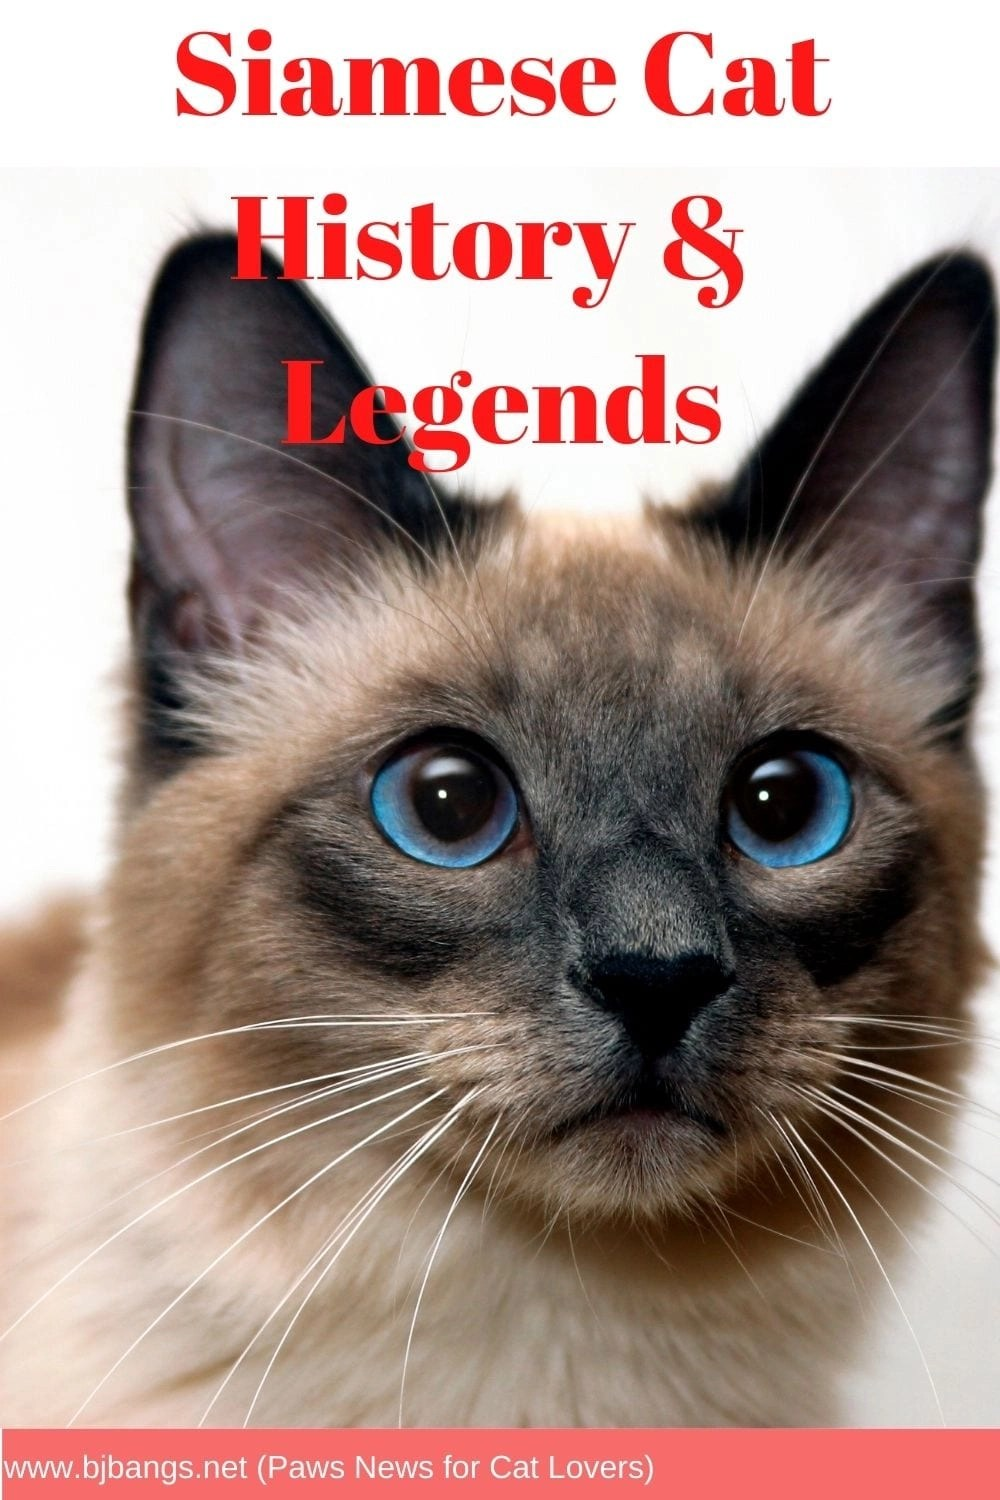 Pin of Siamese Cat talking about Siamese Cat History